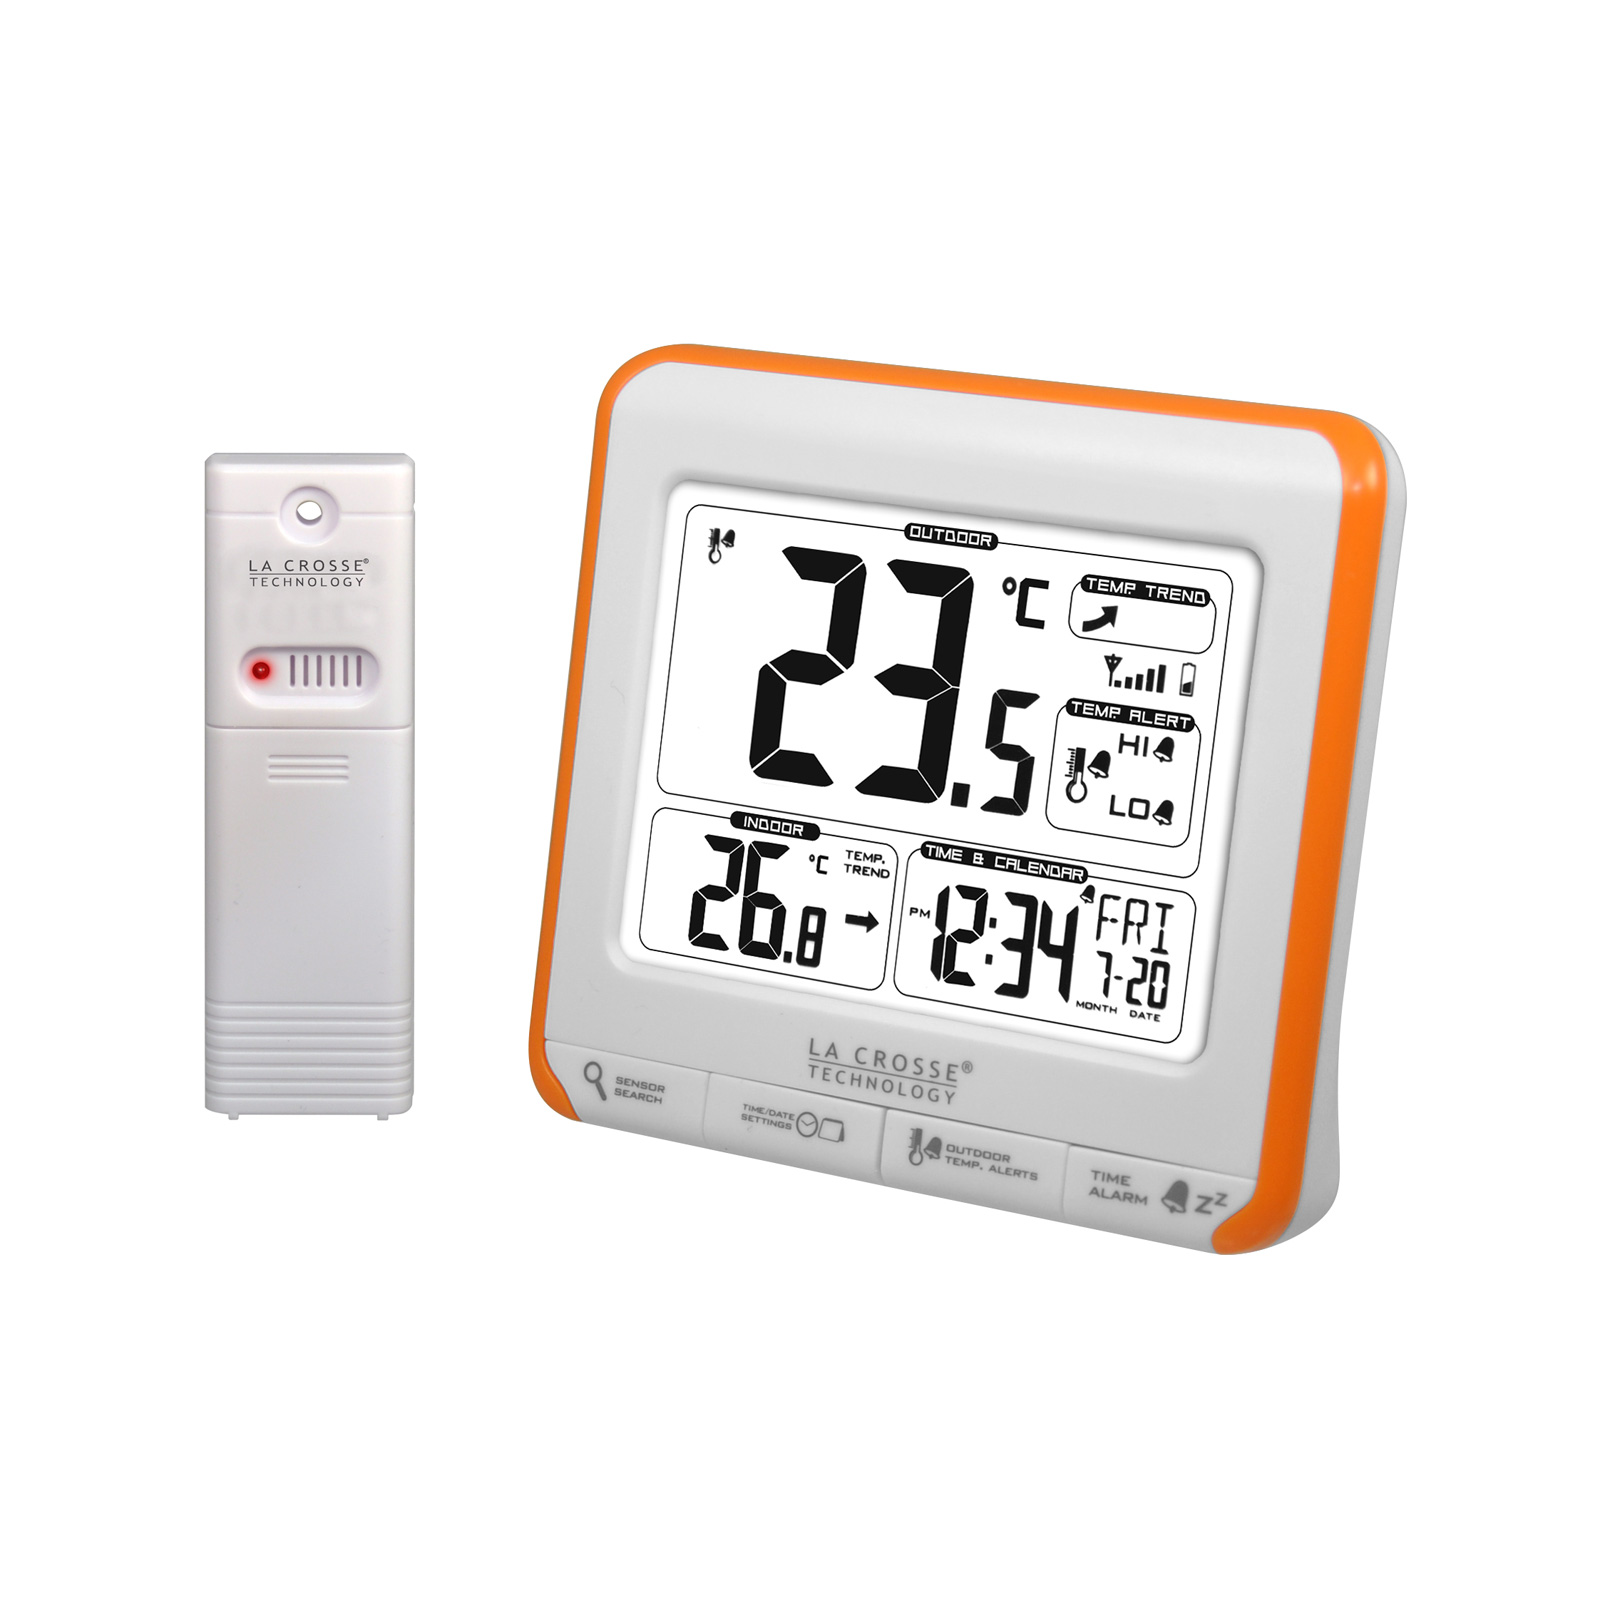 La crosse technology ws6811 orange station m t o la for Station meteo avec capteur exterieur sans fil